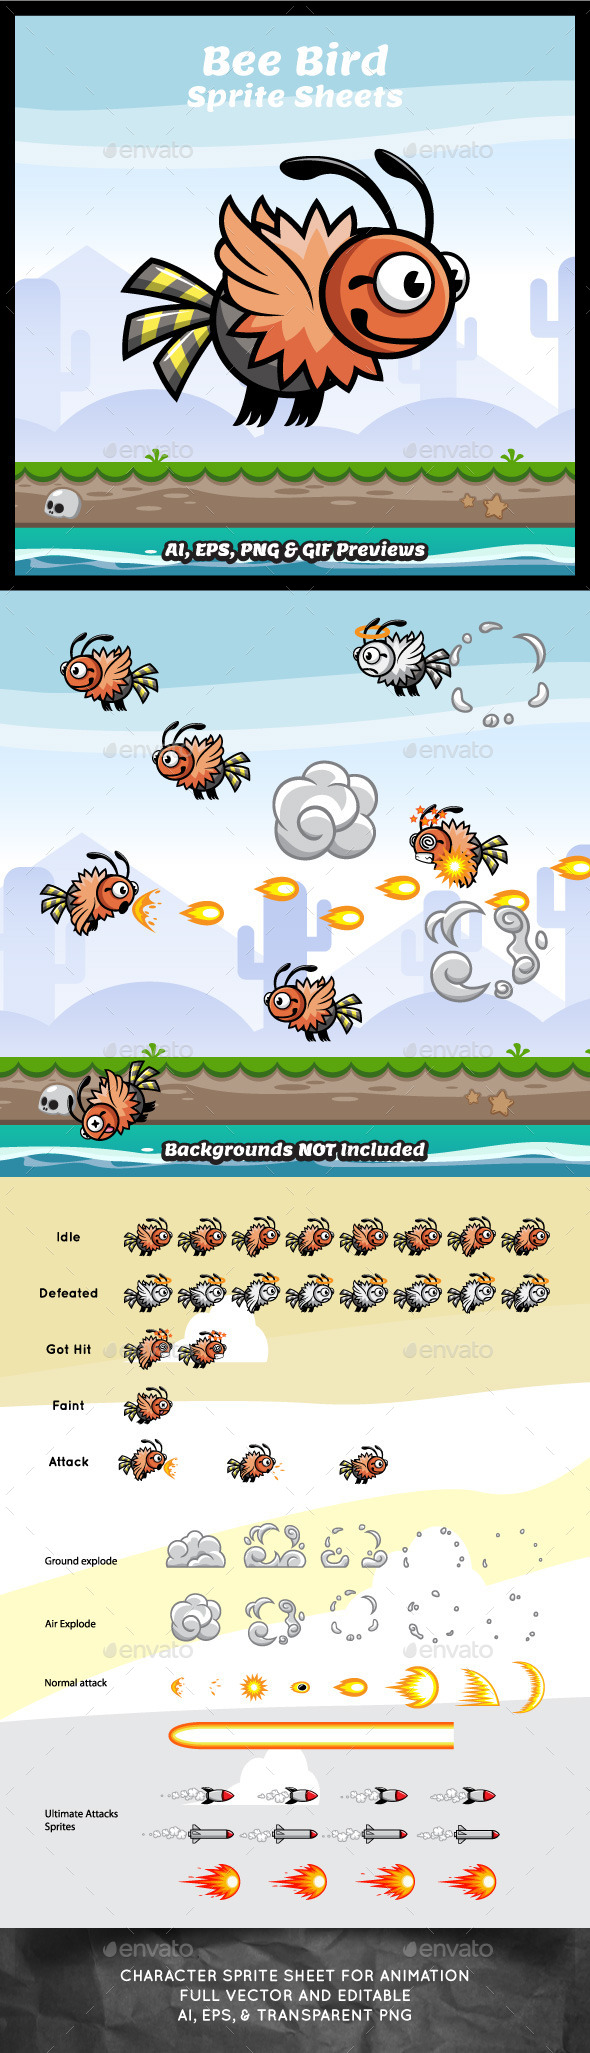 Bee Bird Game Character Sprite Sheets - Sprites Game Assets